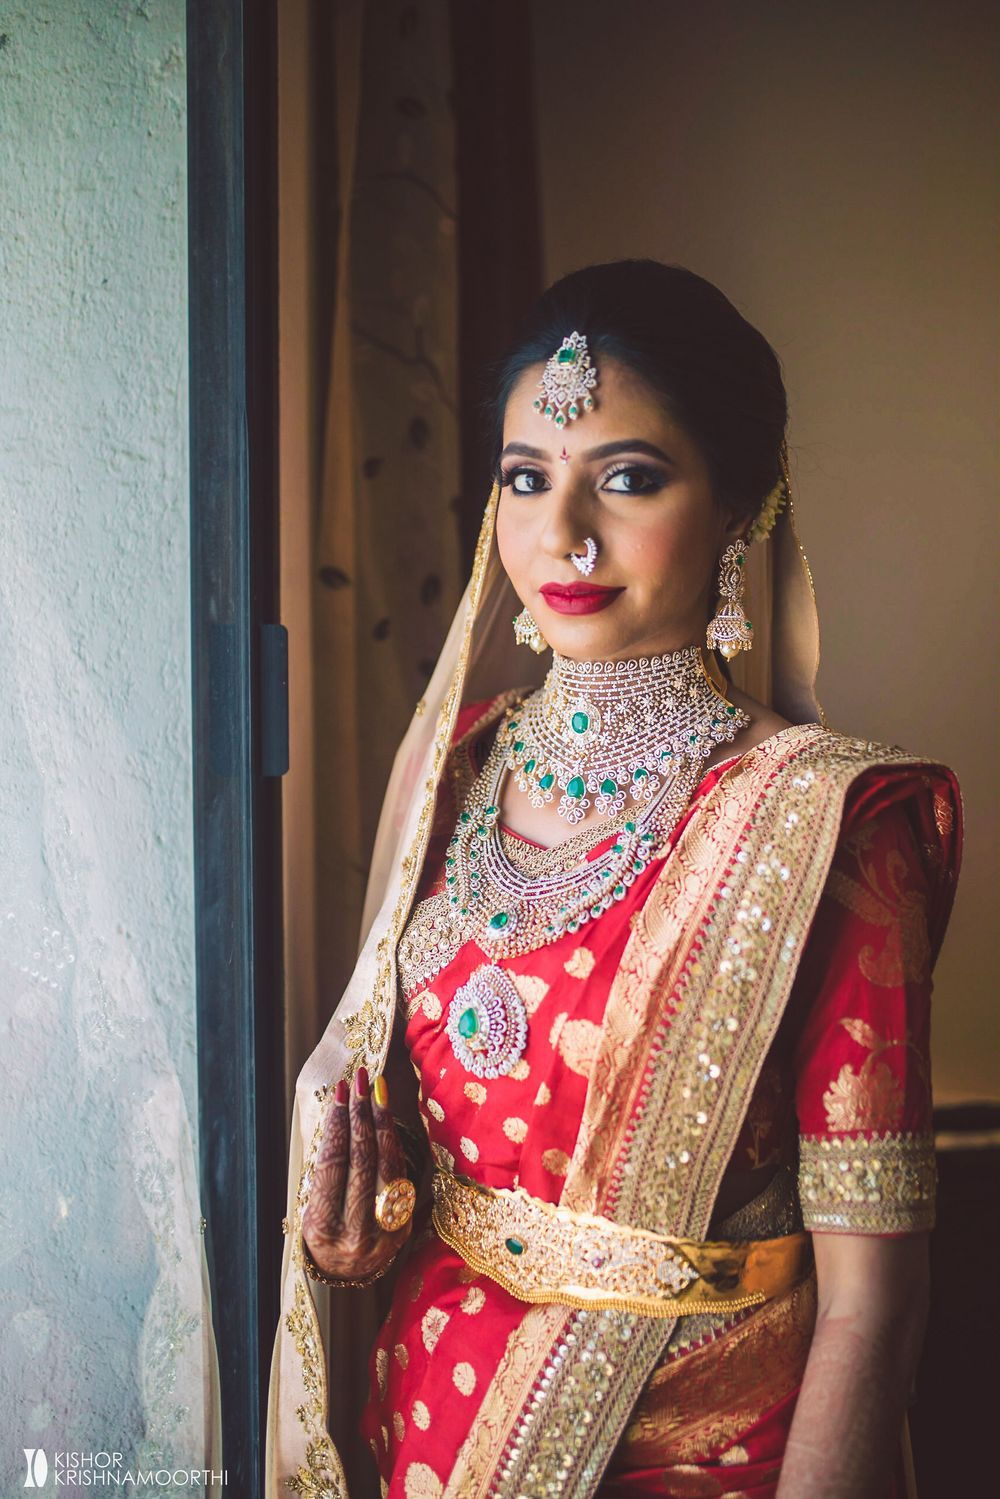 Photo of south indian bride in red kanjivaram with contrasting green jewellery